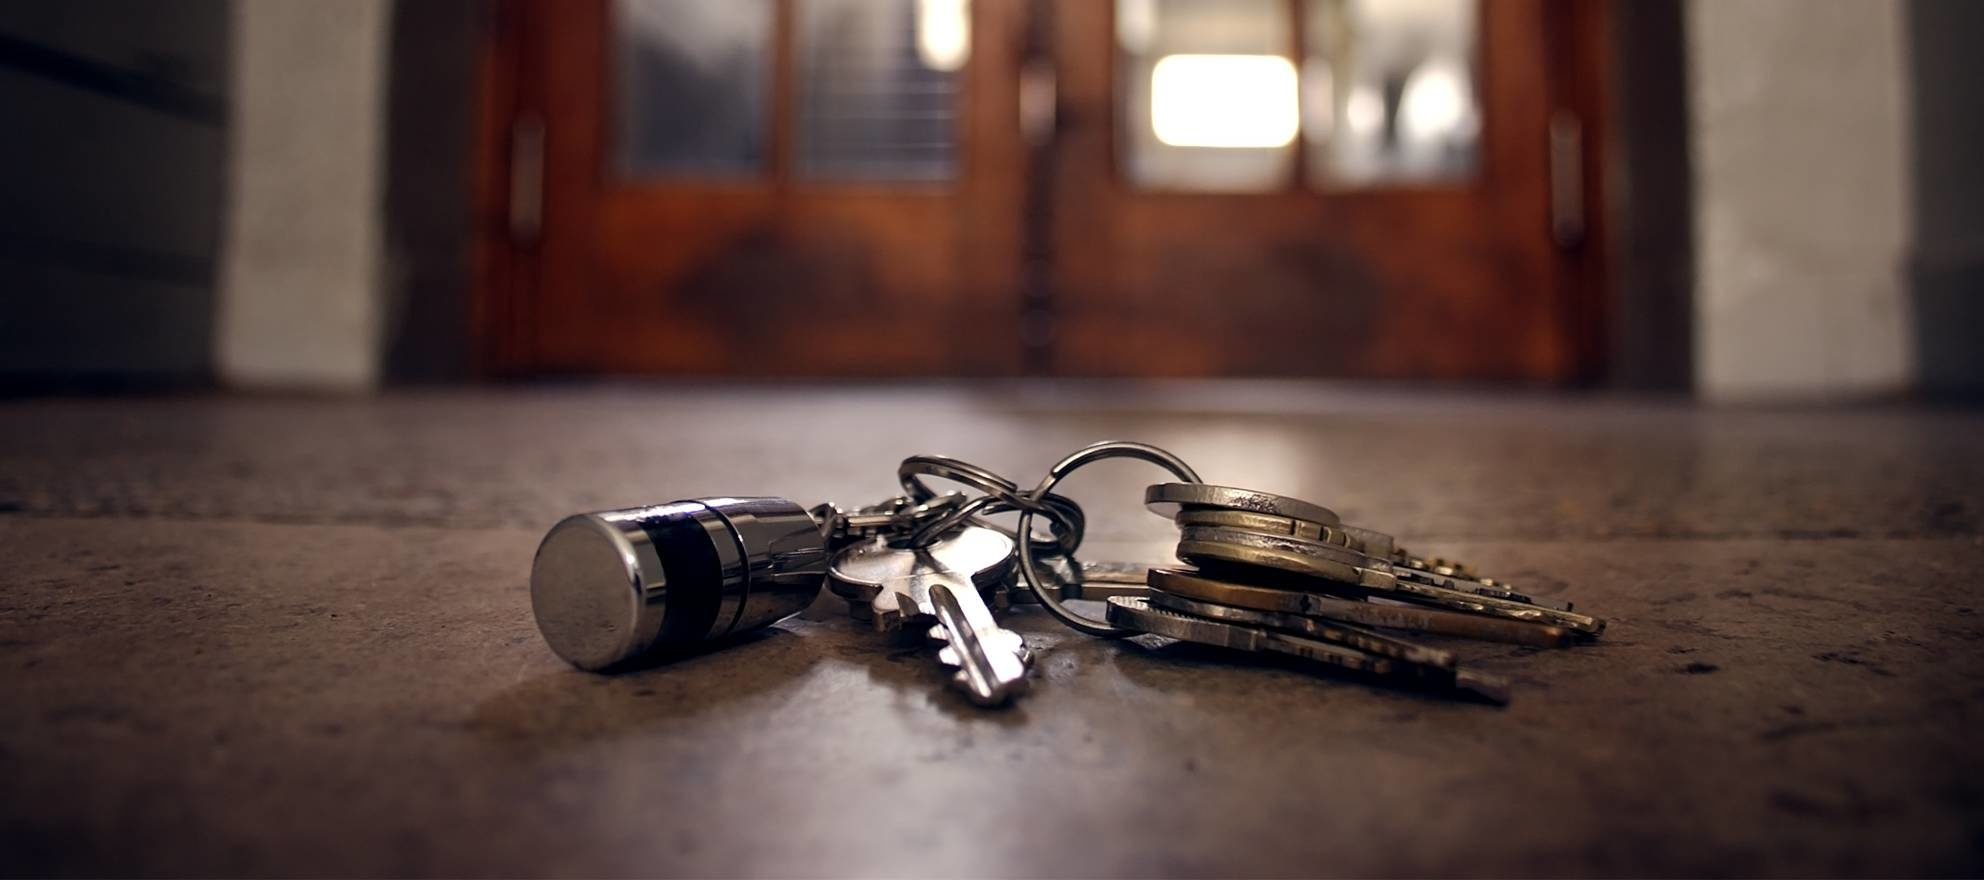 Homeowner Keys reveals homeowner property improvements, mortgage activity and more